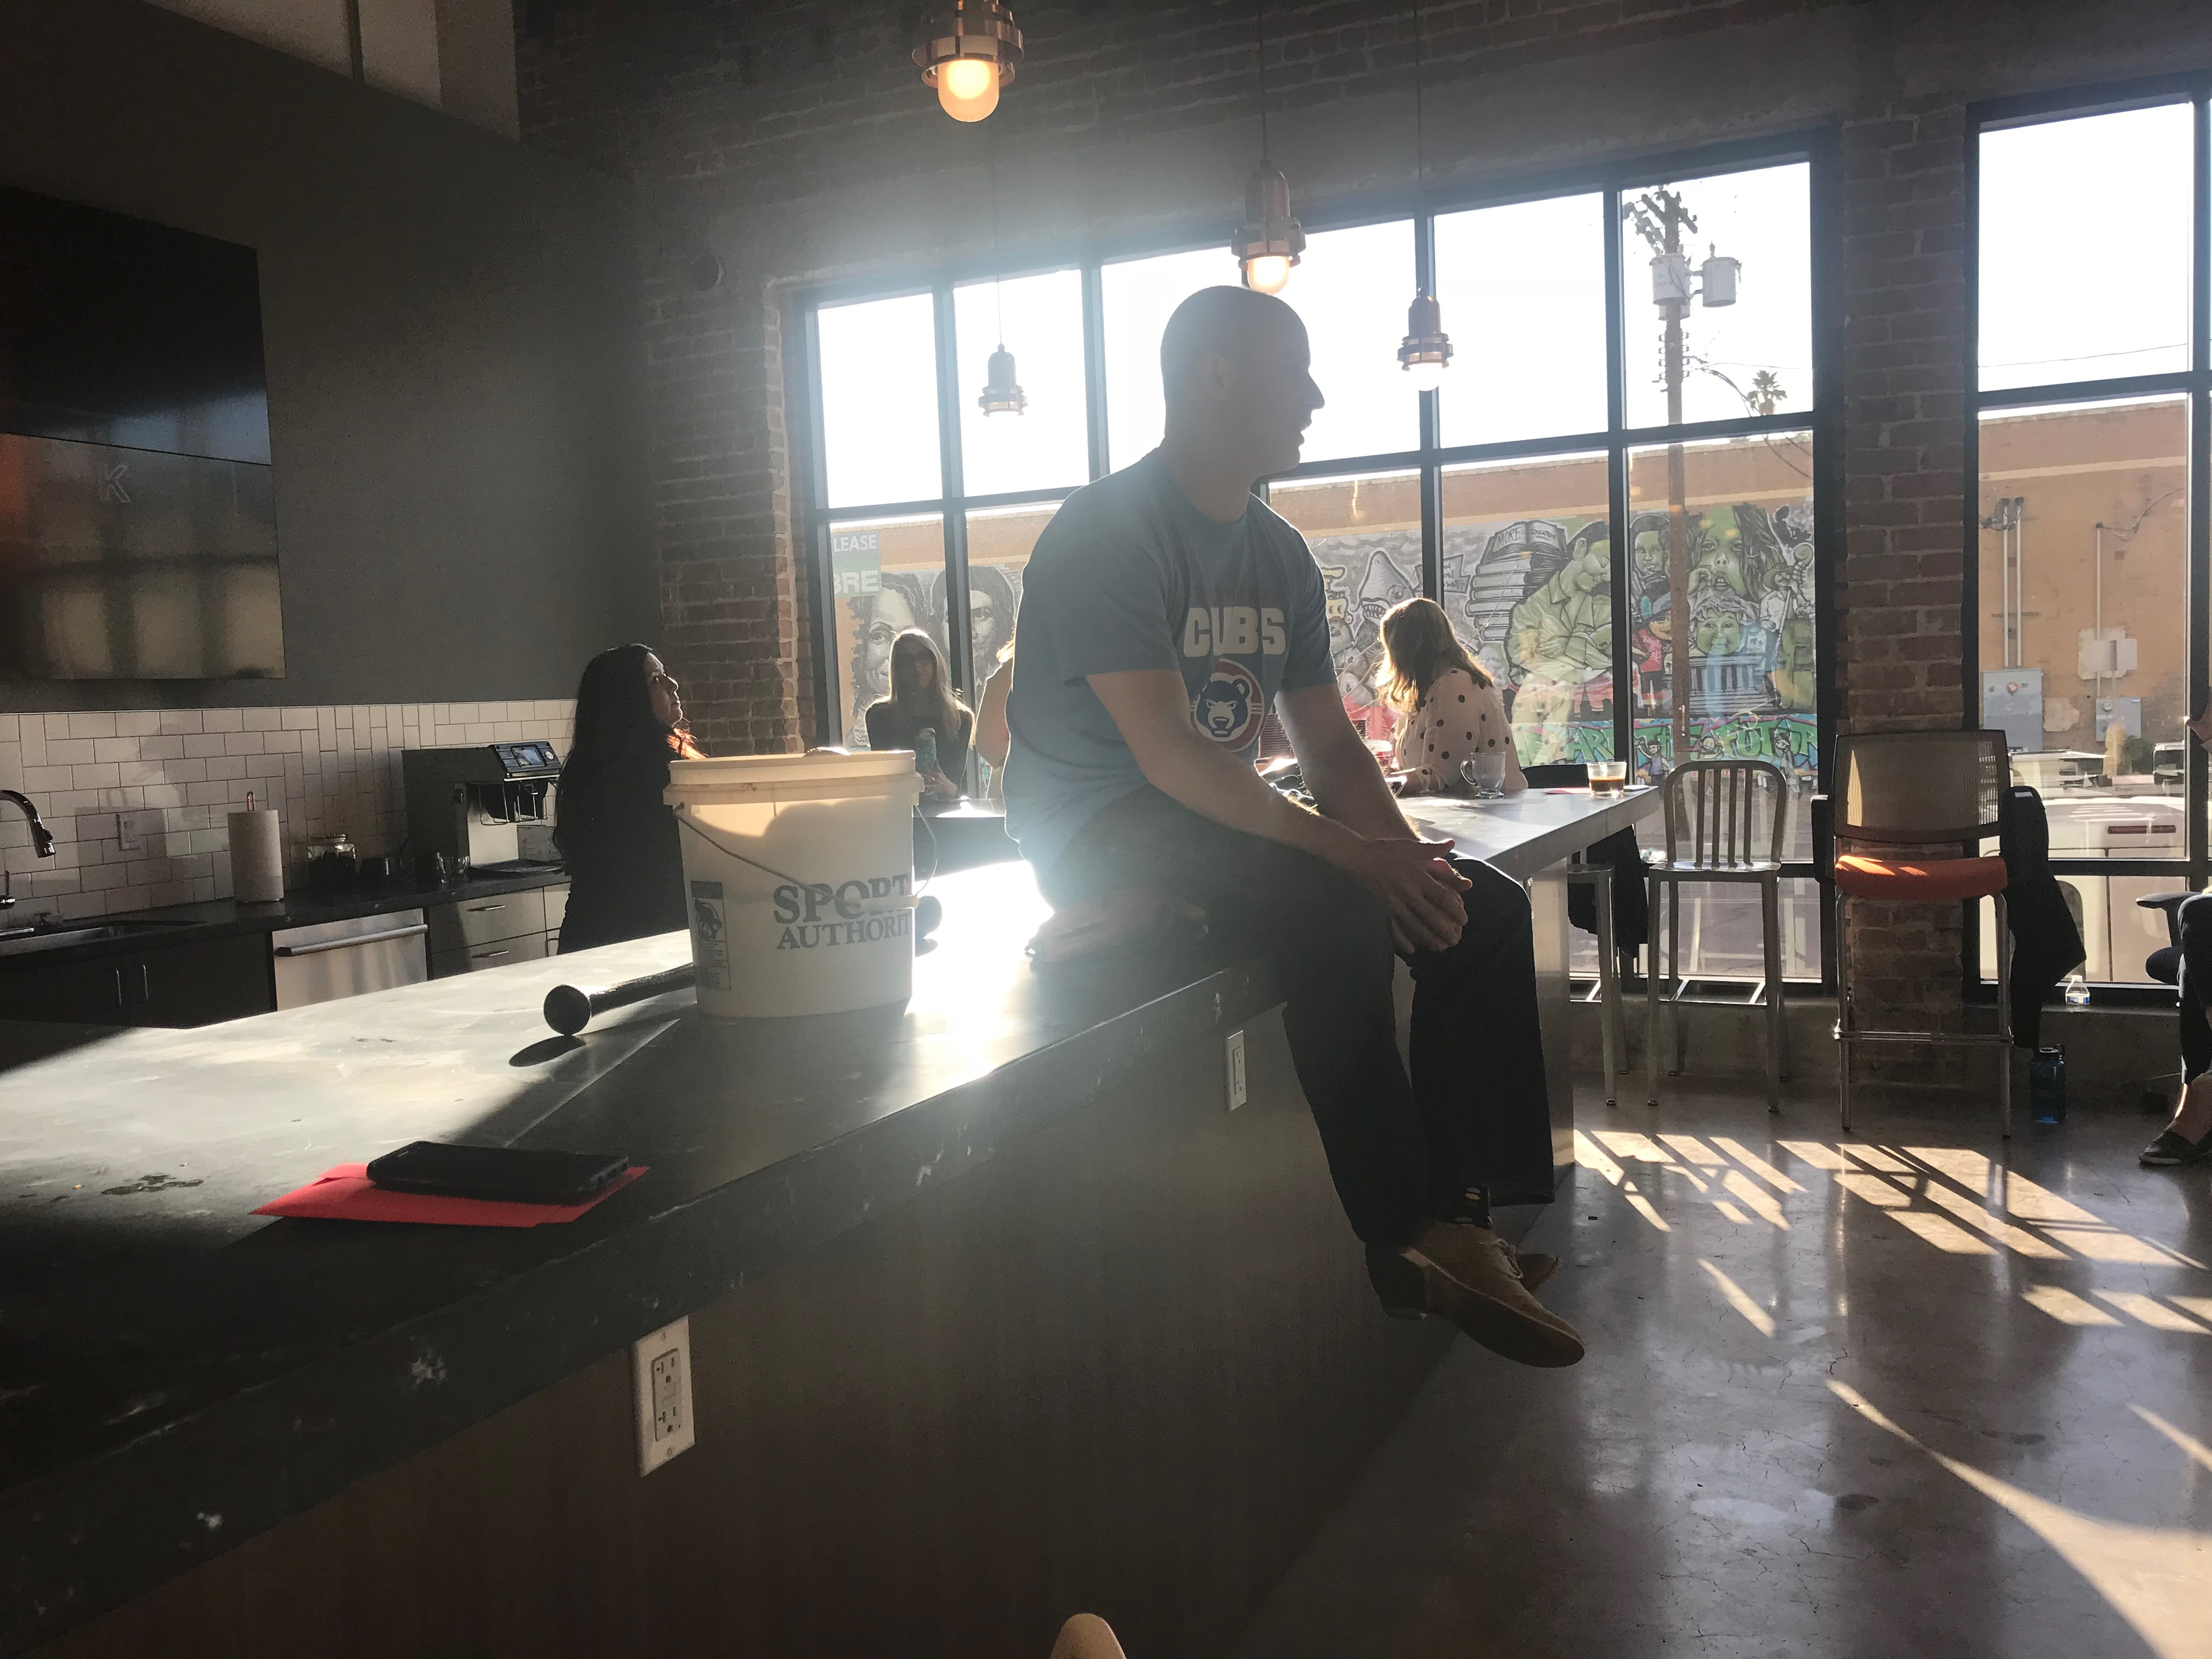 A male employee sits on the counter in the Ideas Start Here Cafe at STC, getting ready for a presentation, while several other employees eat lunch on barstools in a different area of the counter.